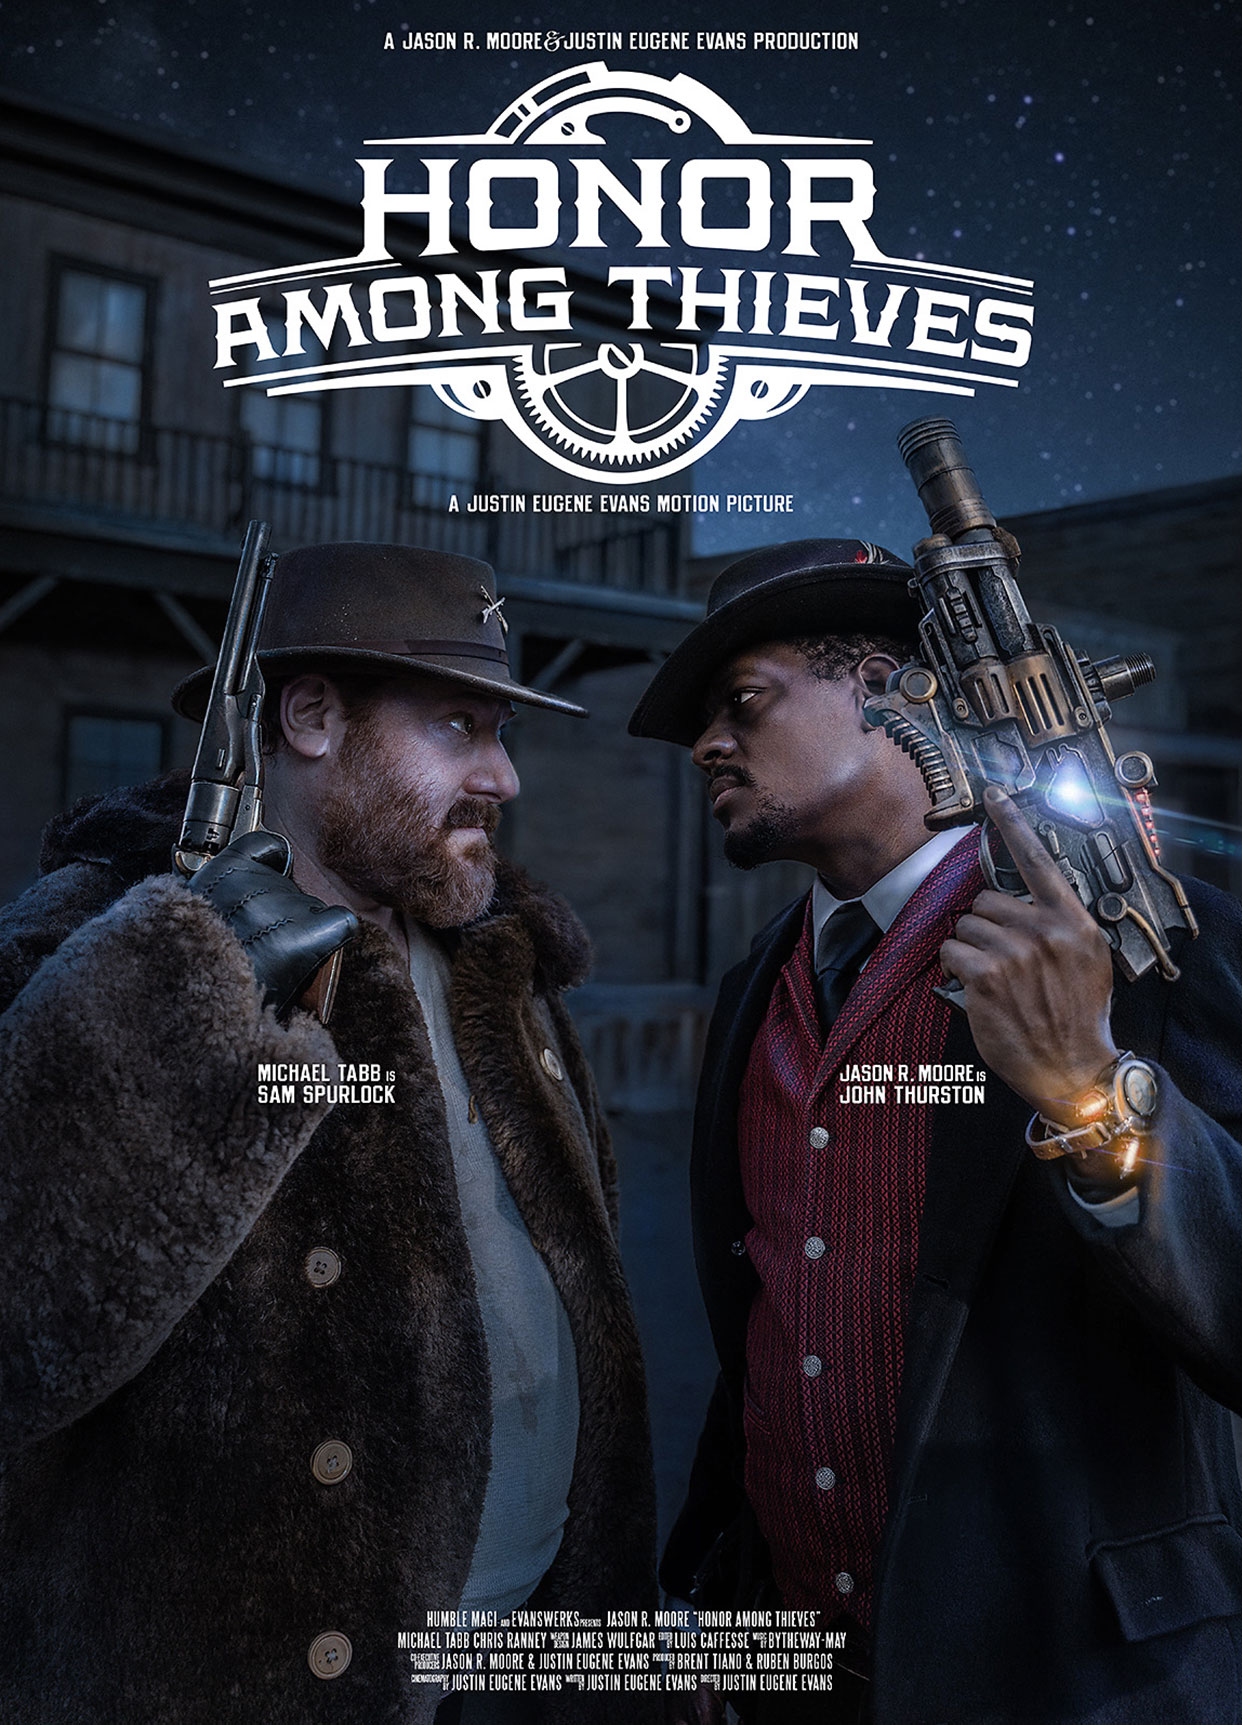 HONOR-AMONG-THIEVES-Justin-Eugene-Evans